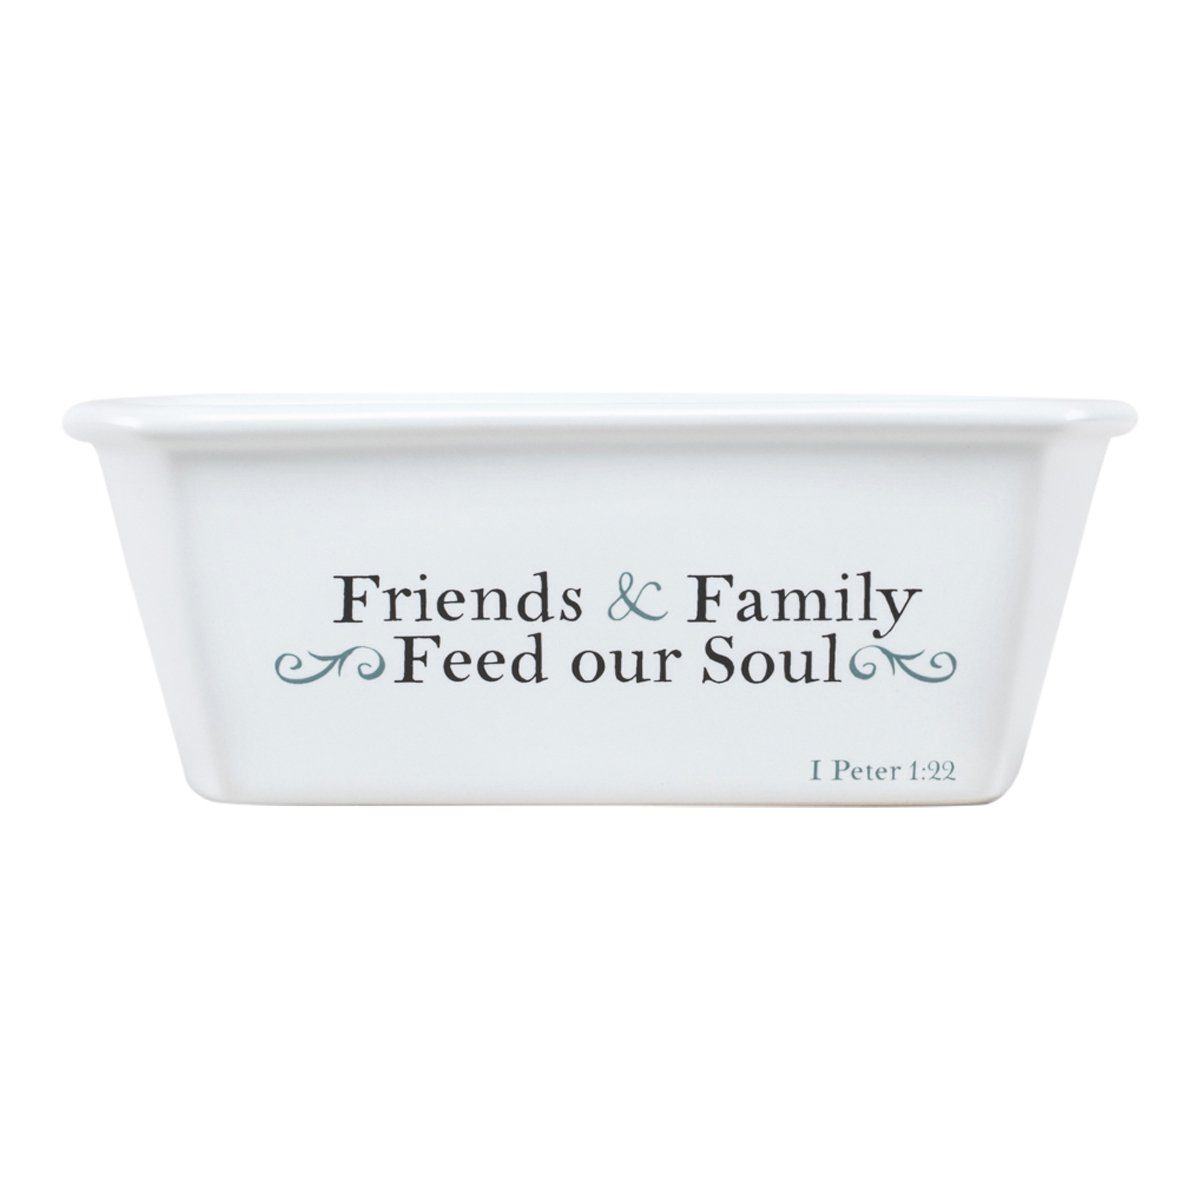 Mini Loaf Pan - Friends and Family - White